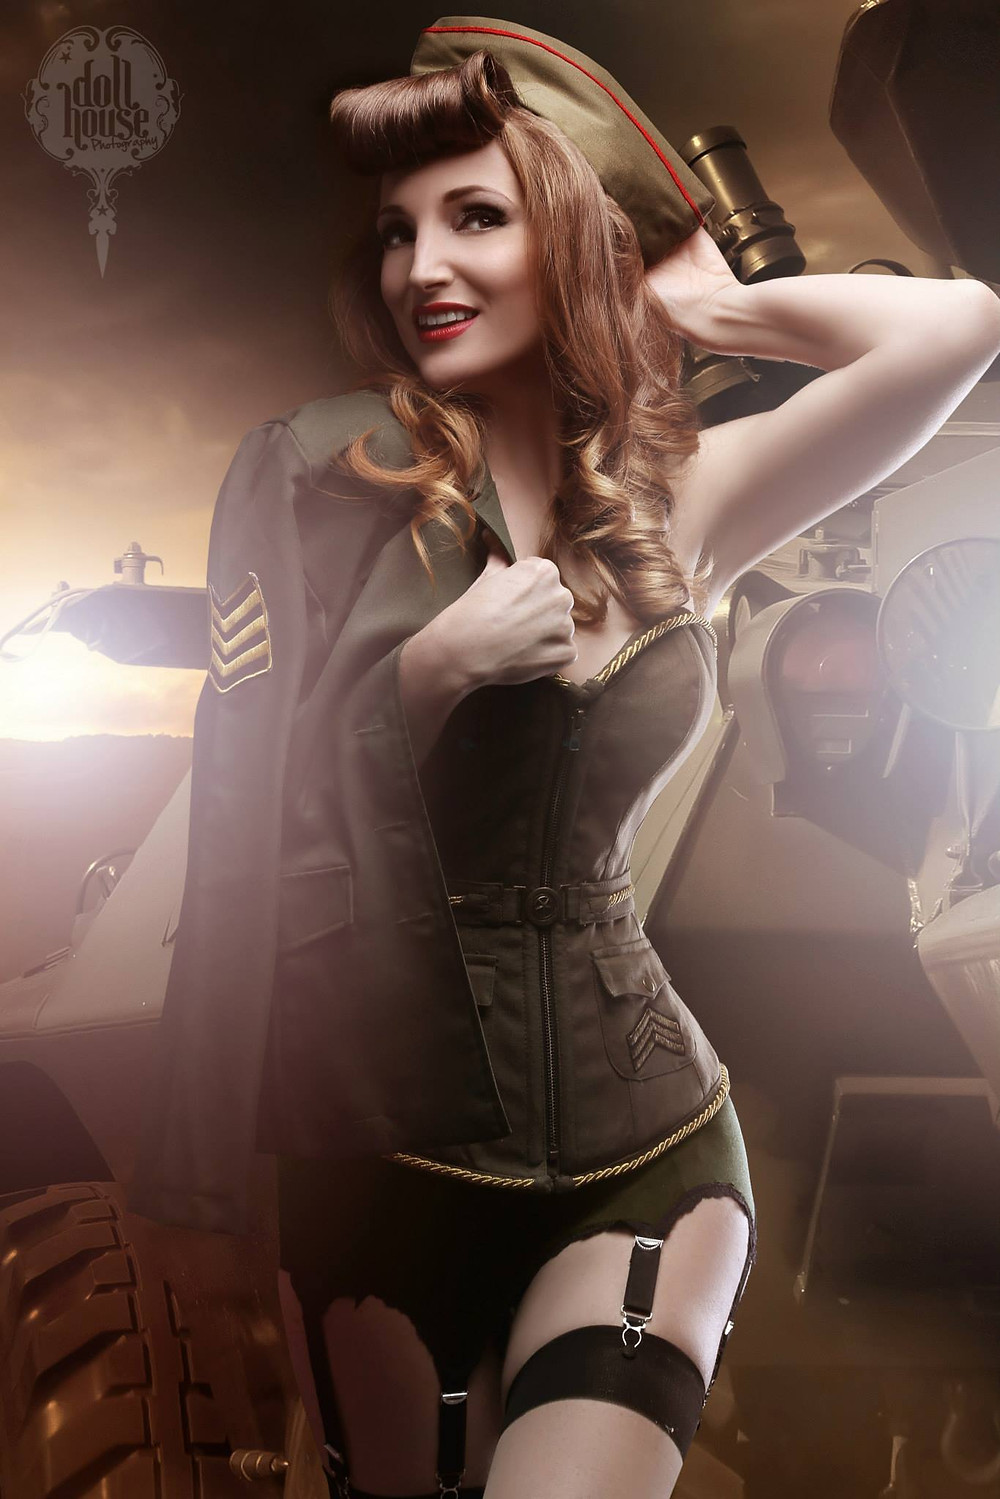 Military Pin-up by Dollhouse Photography - Award Winning Pinup Photographer